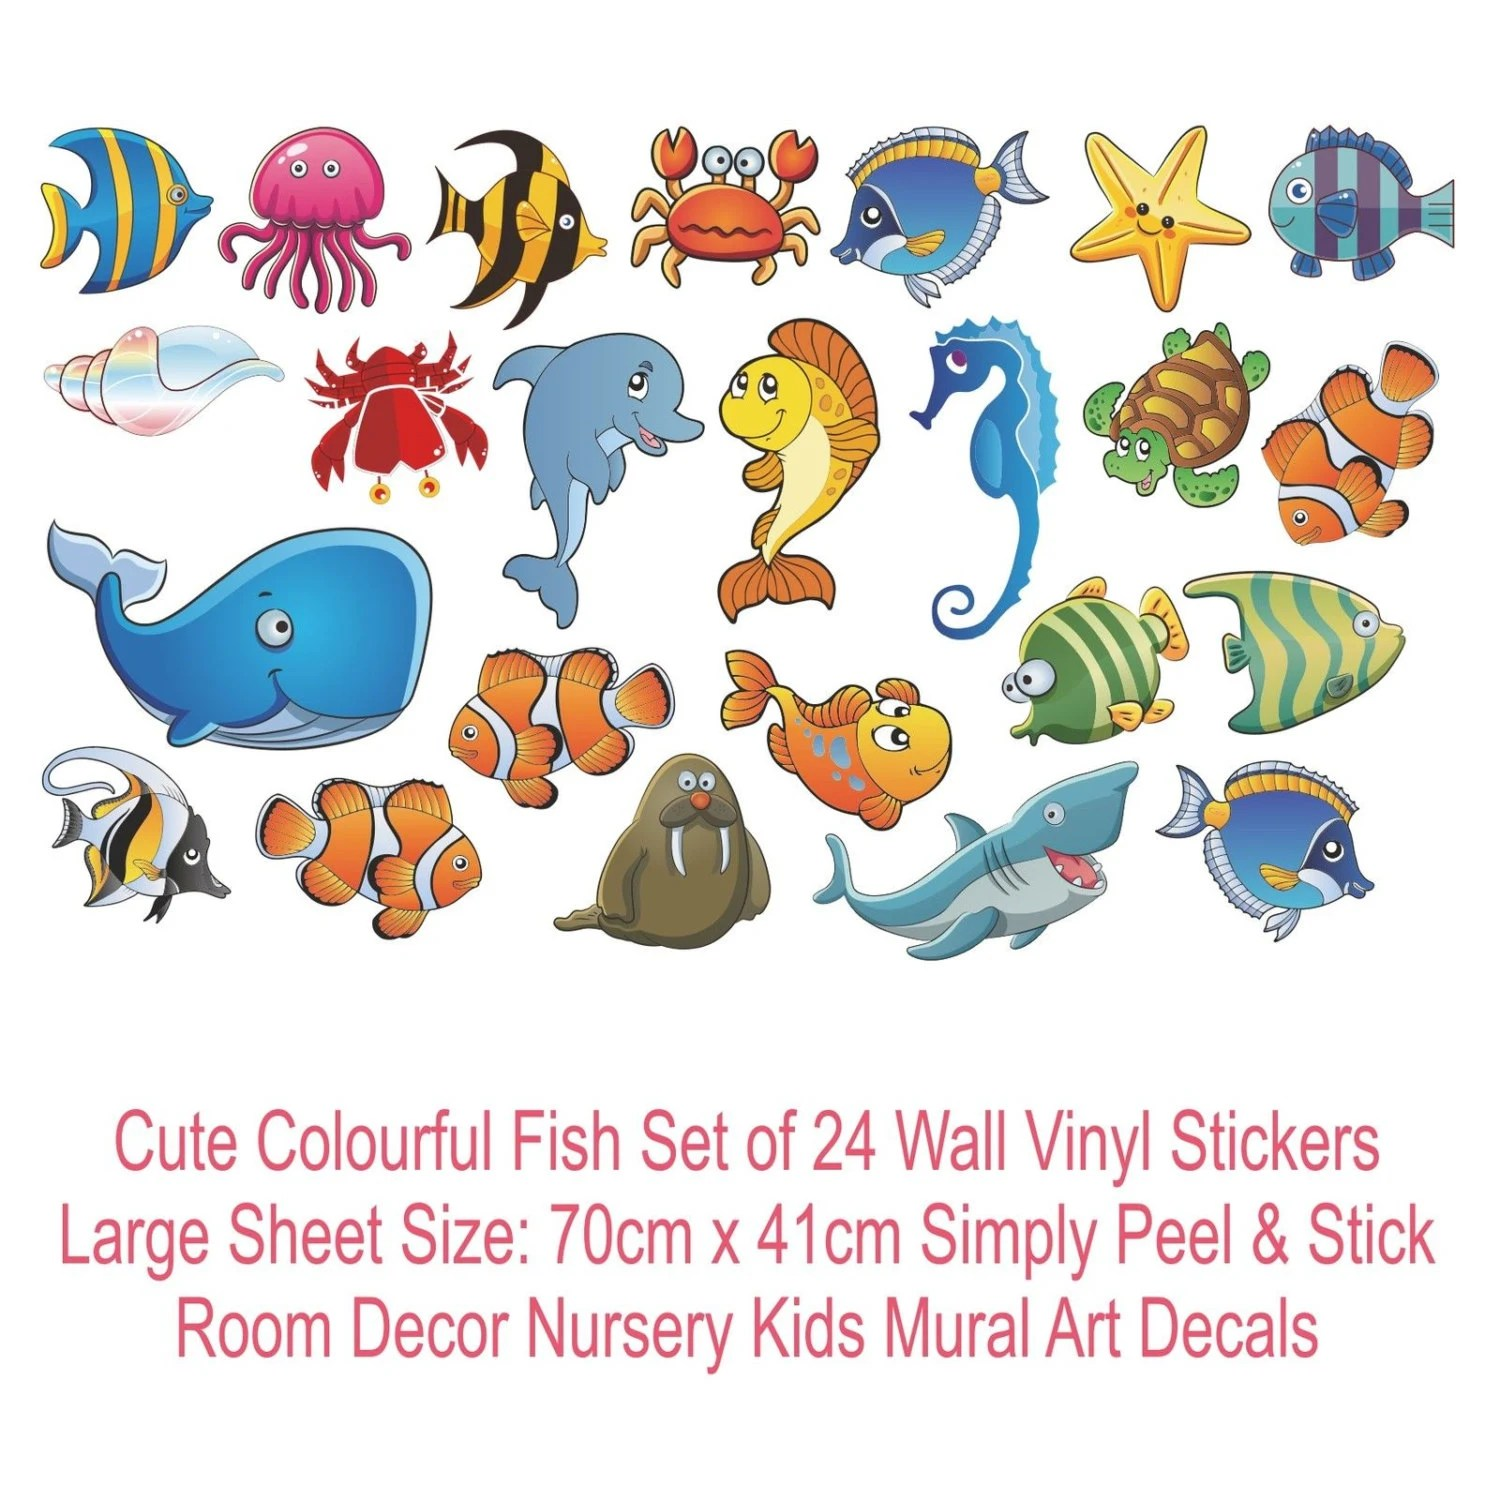 Nemo Bathroom Set Finding Nemo Cute Fish Wall Sticker Set Bathroom Nursery Baby Room Colour Decals